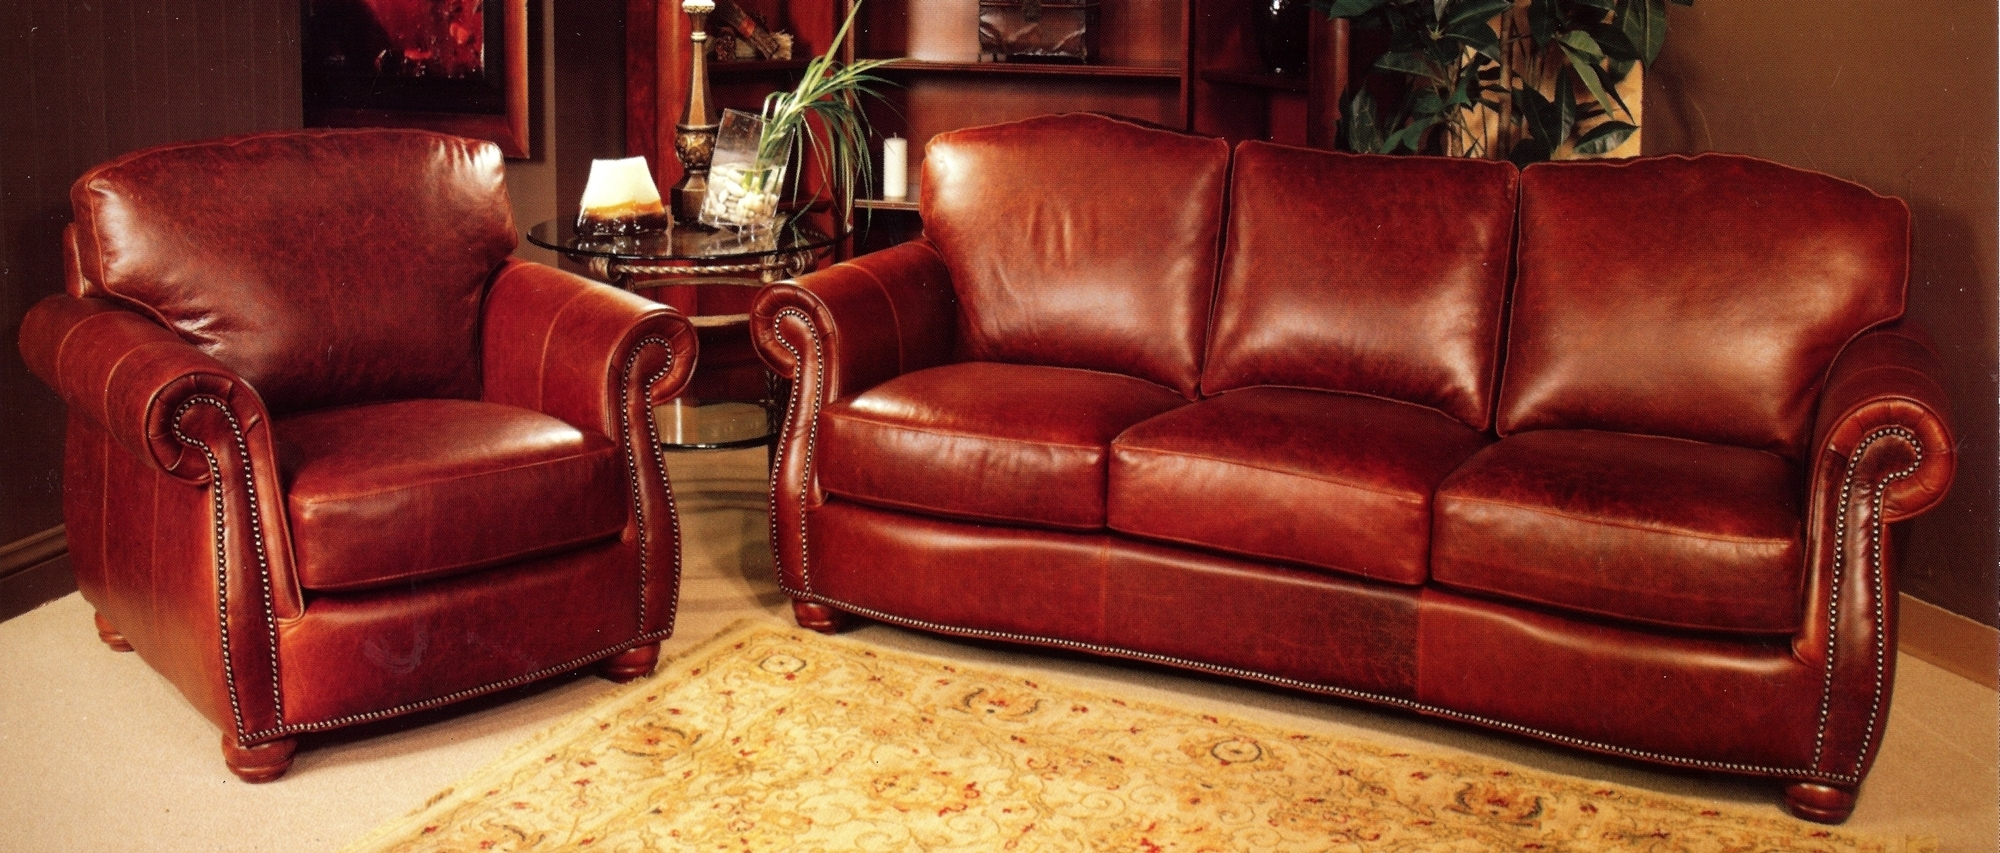 Red Leather Sofas Within Best And Newest Rustic Red Leather Sofa And Rustic Red Leather Chair With Rustic (View 13 of 15)